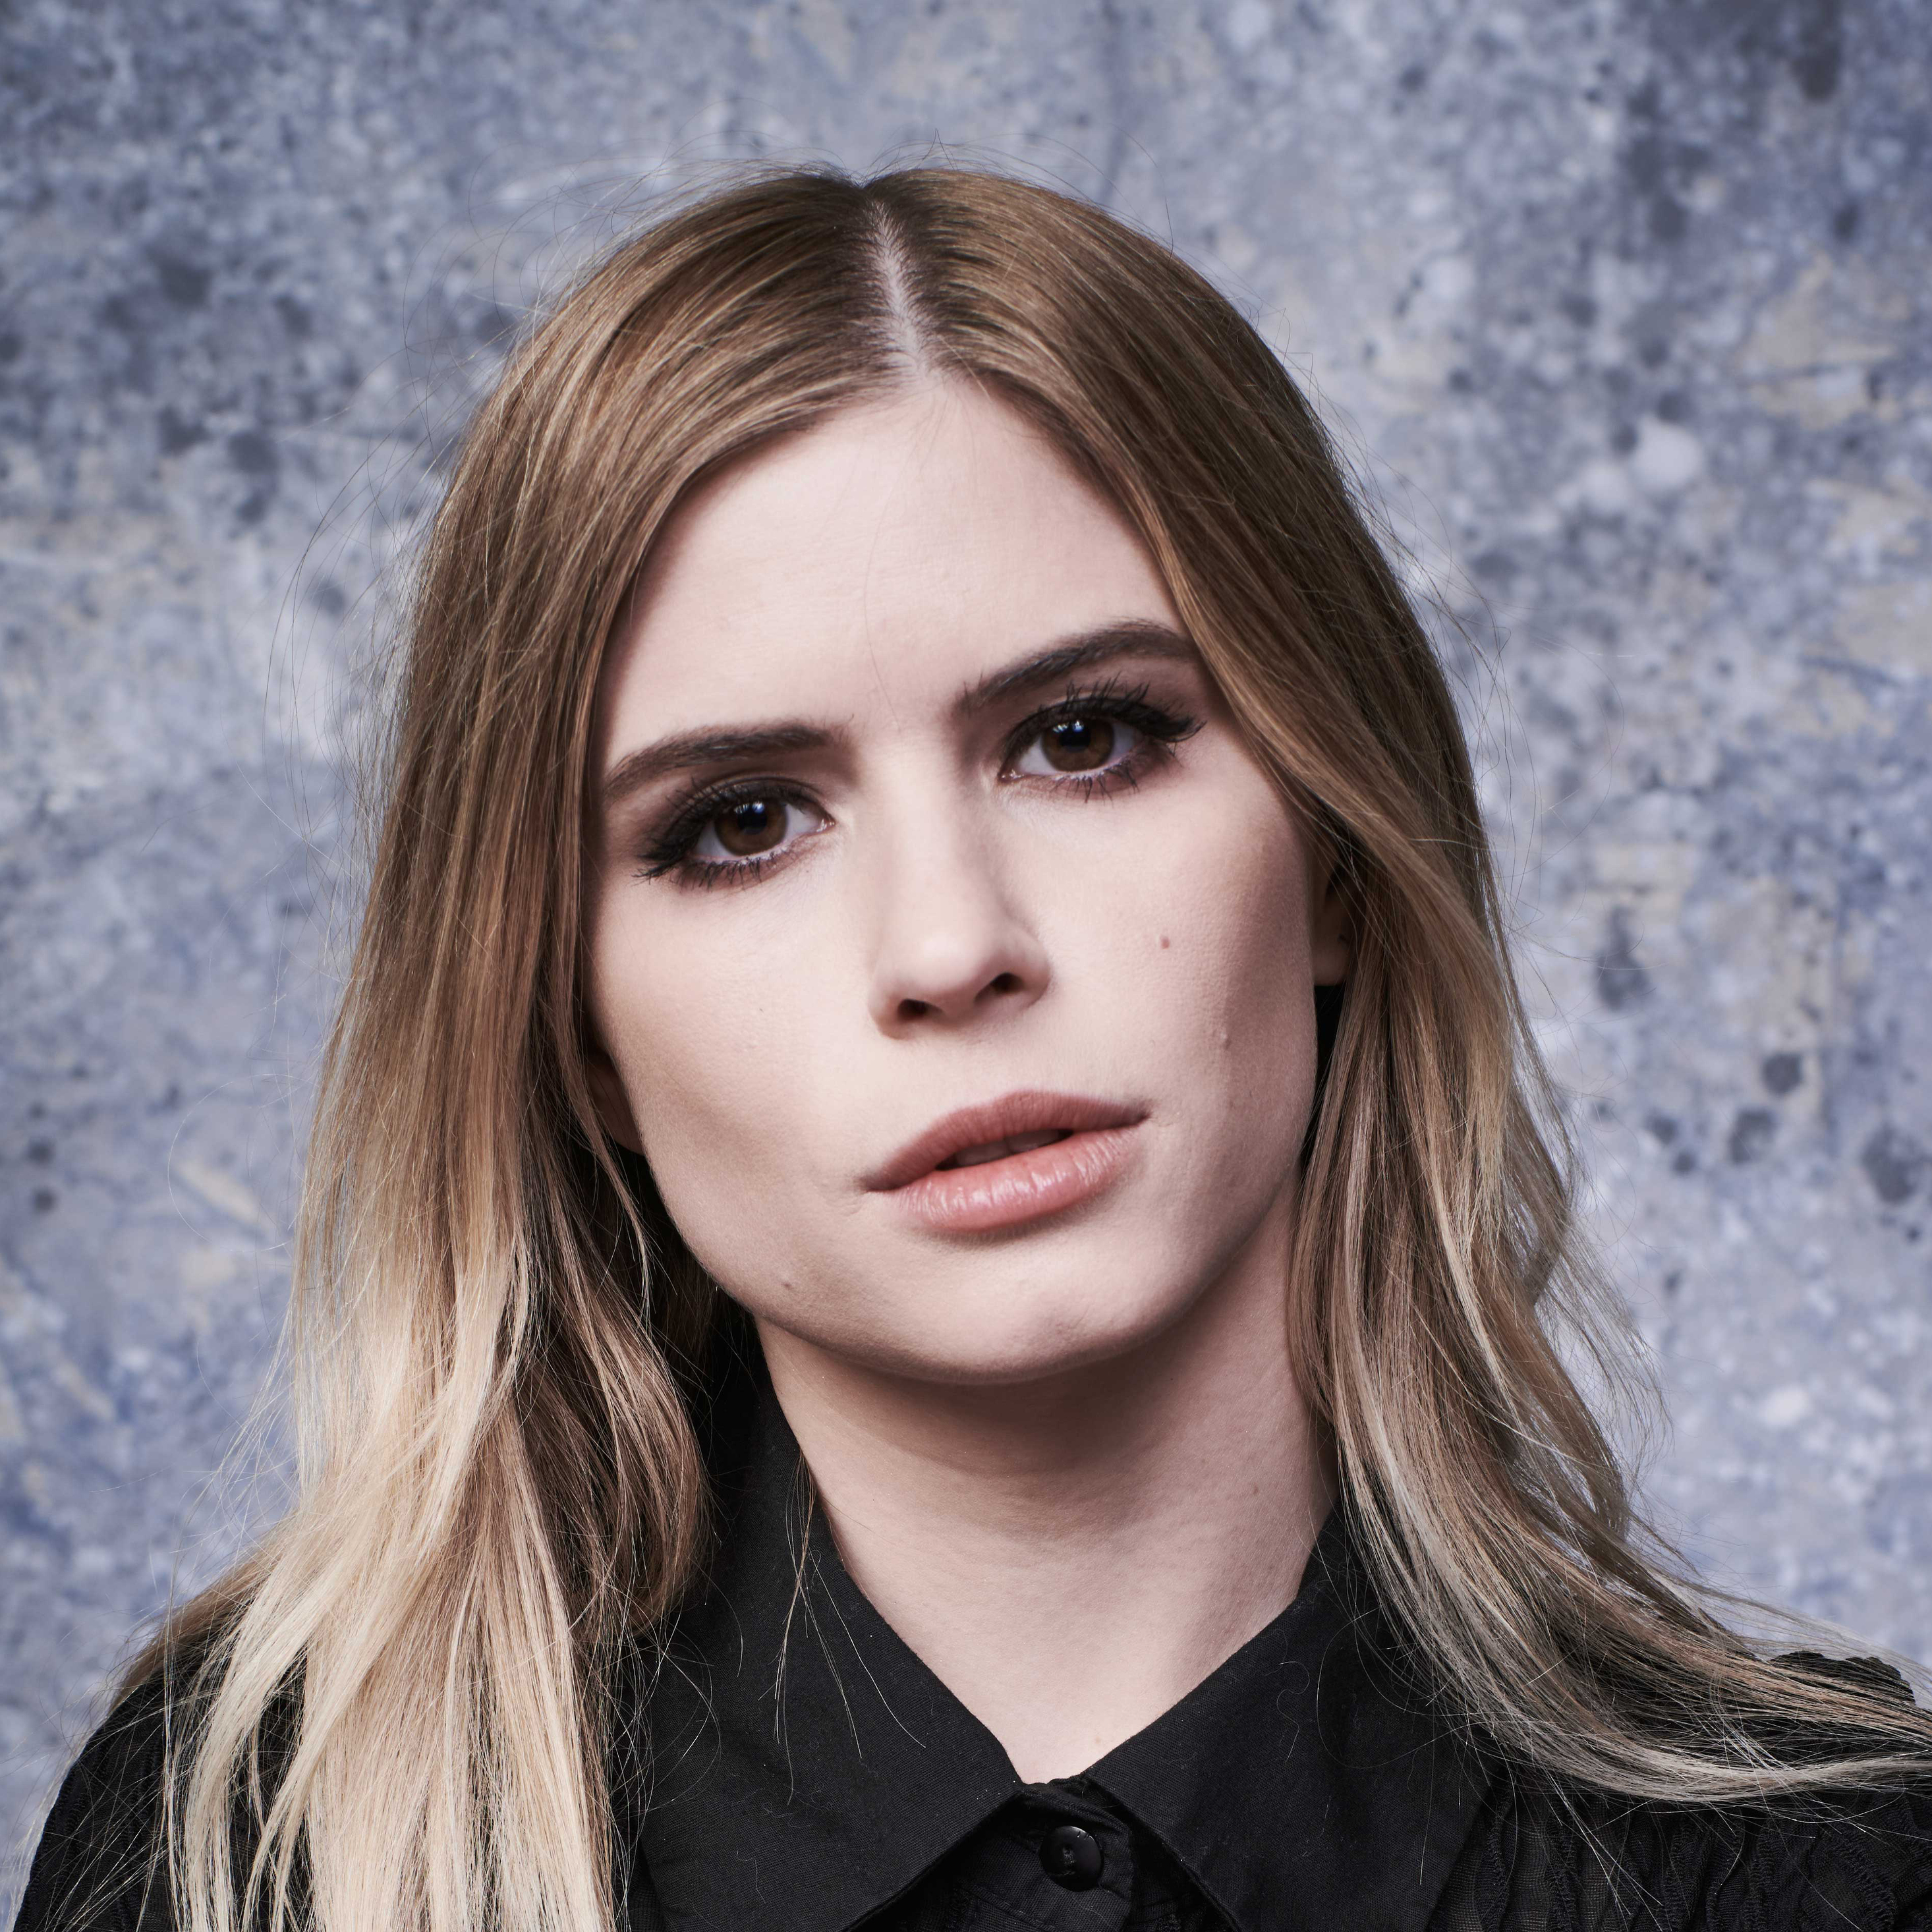 Carlson Young nudes (38 photo), Pussy, Fappening, Instagram, lingerie 2019